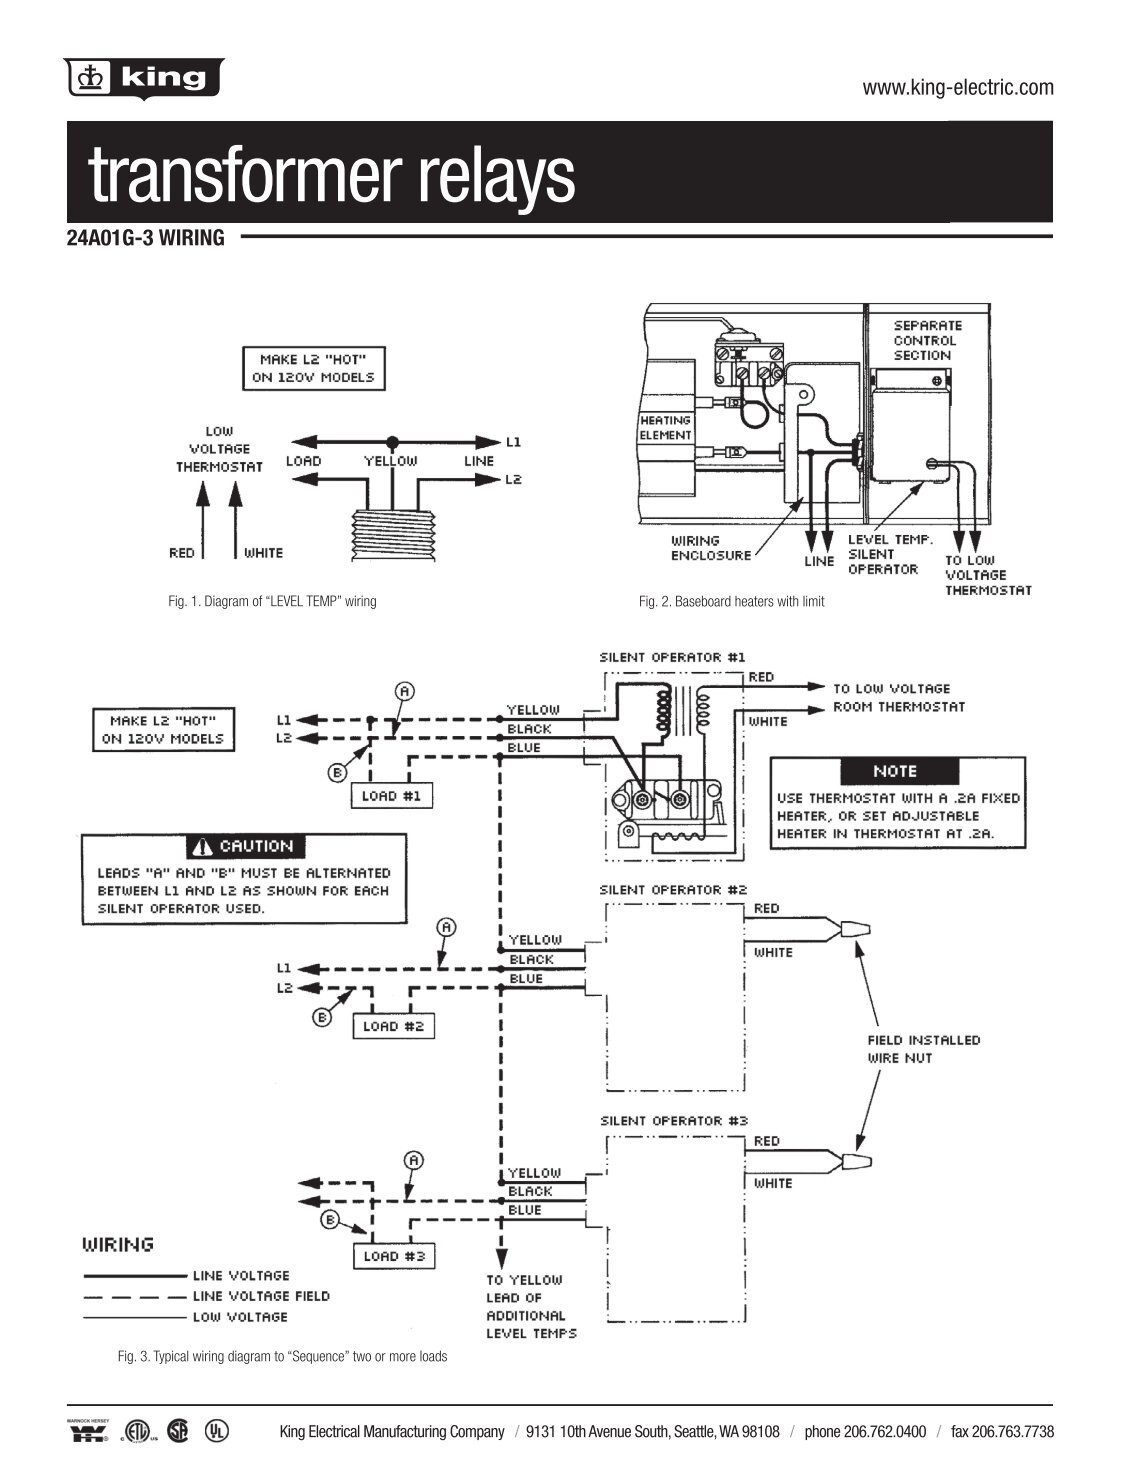 kubota rtv 1100 radio wiring diagram lovely typical thermostat wiring diagram ideas electrical  [ 1137 x 1471 Pixel ]